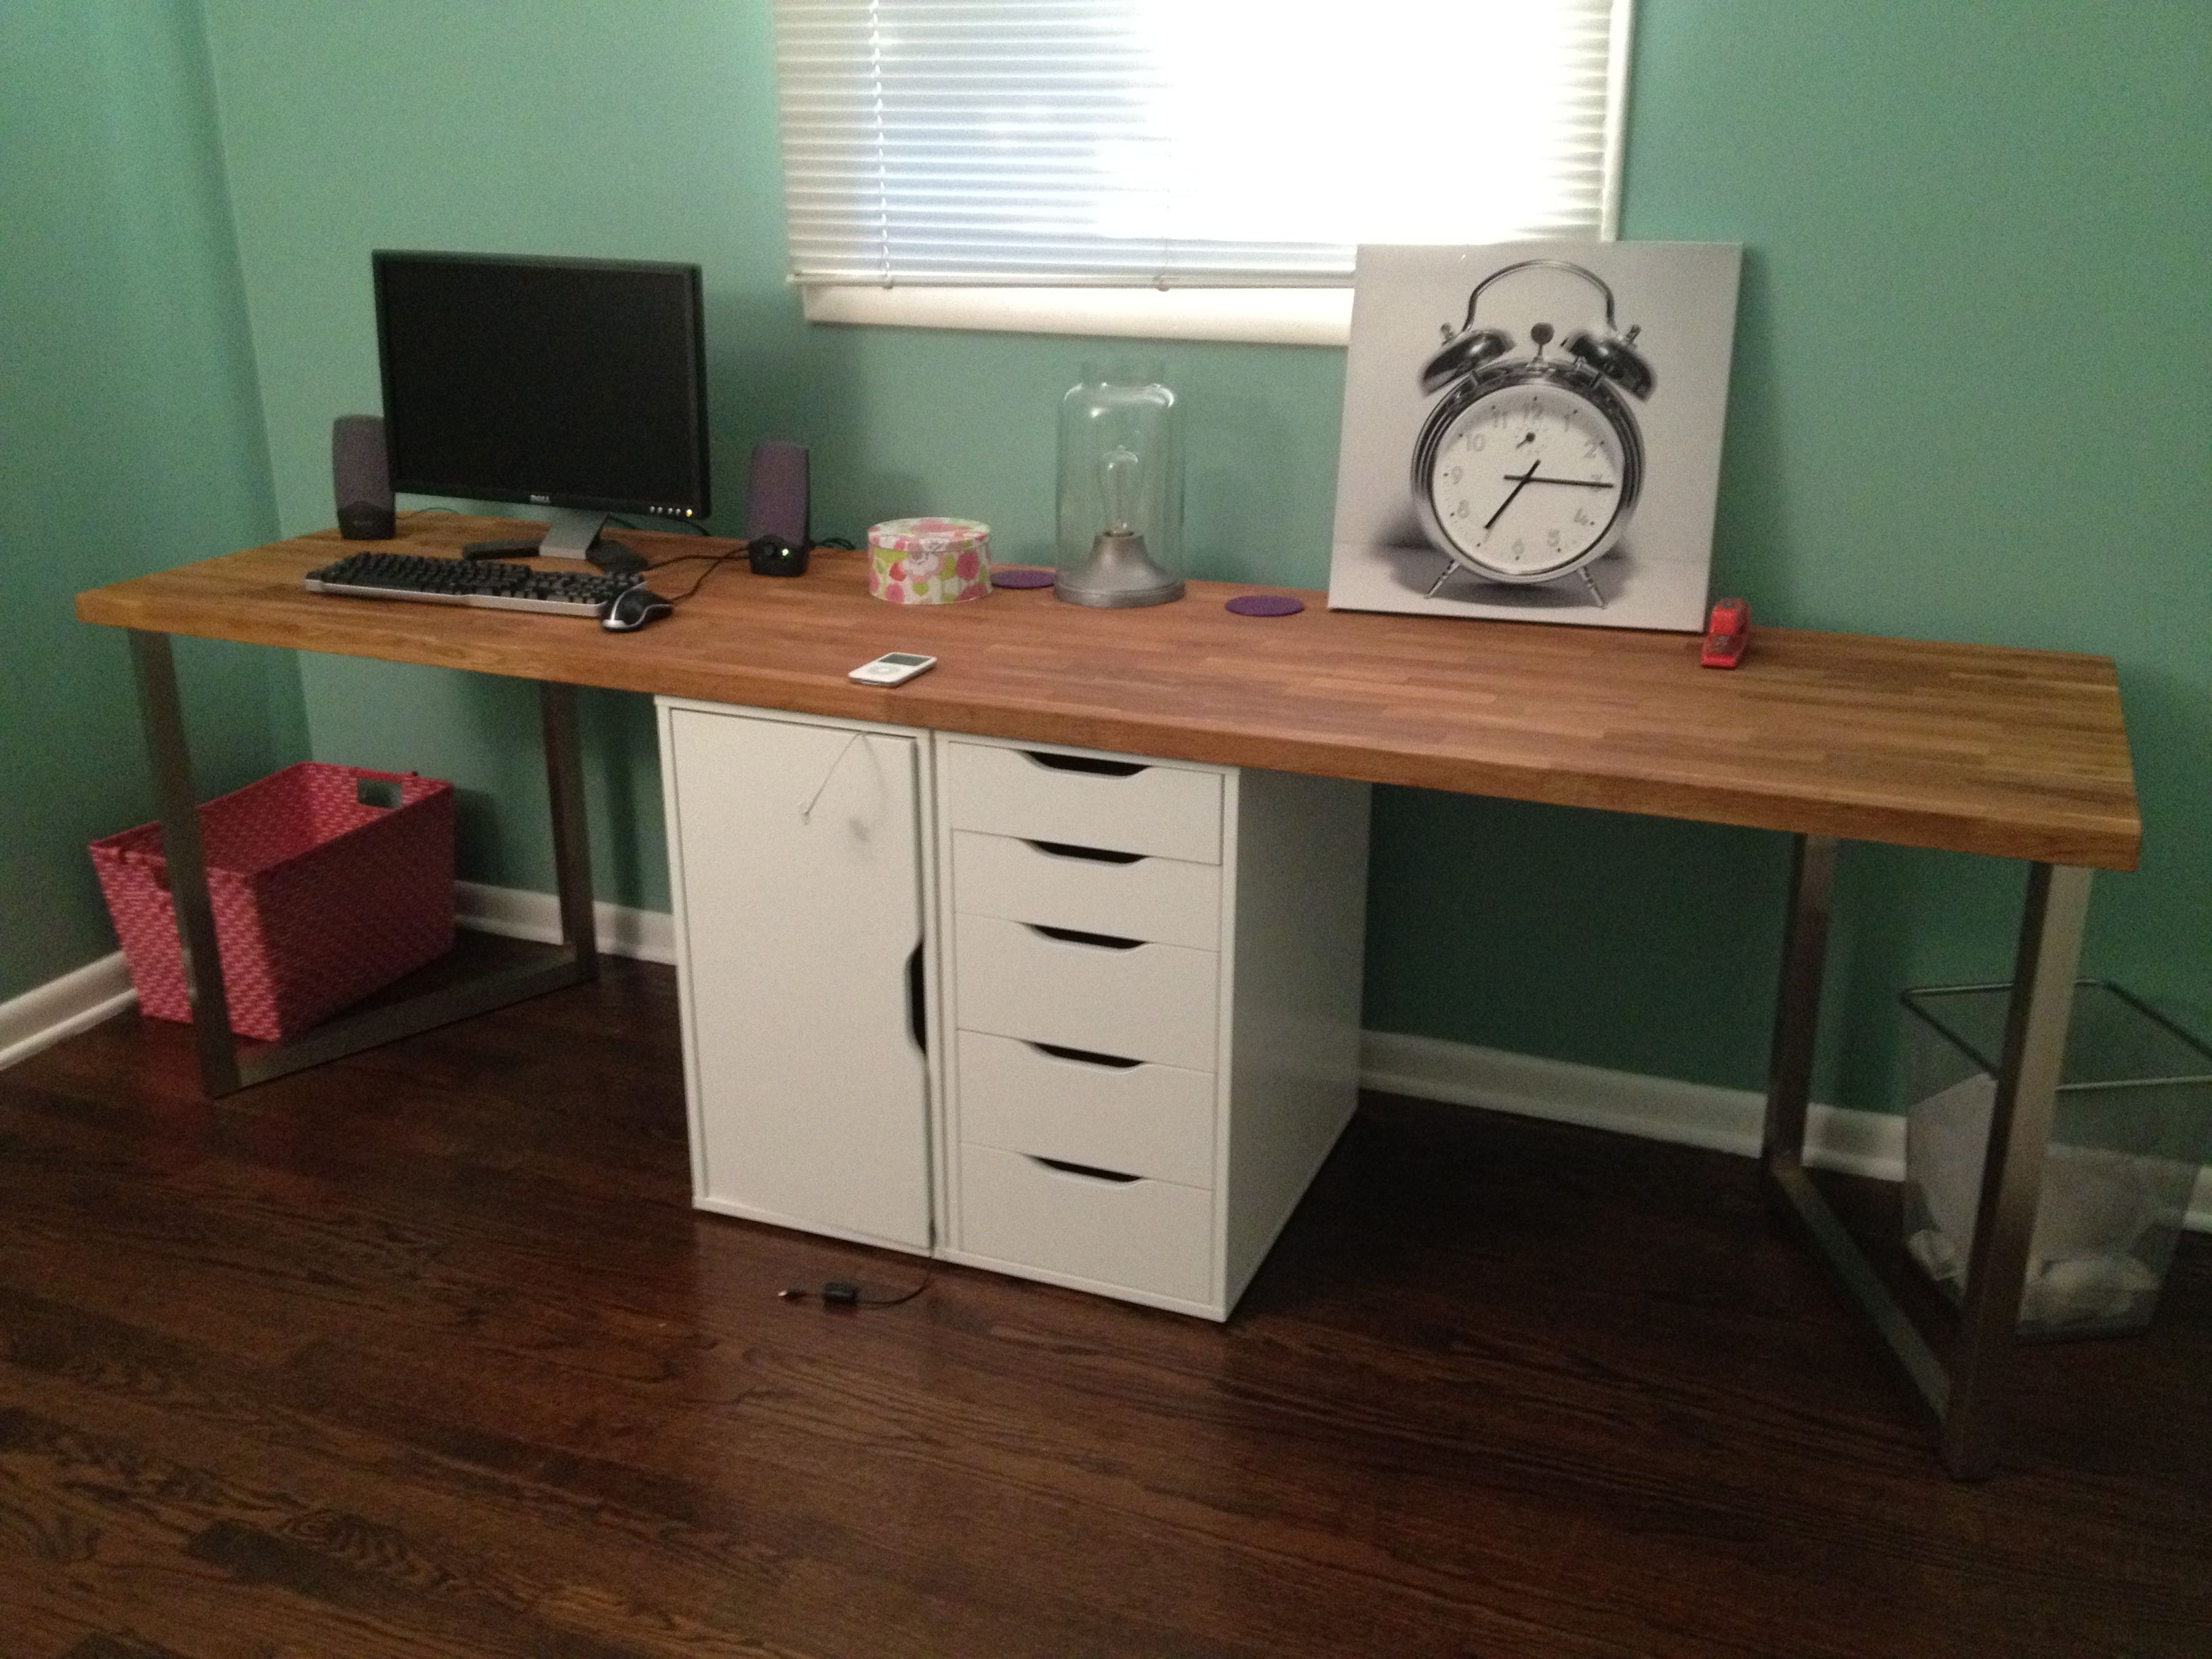 Bureau Bois Ikea Two Person Desk Ikea Unintended Design Element We Had To Turn